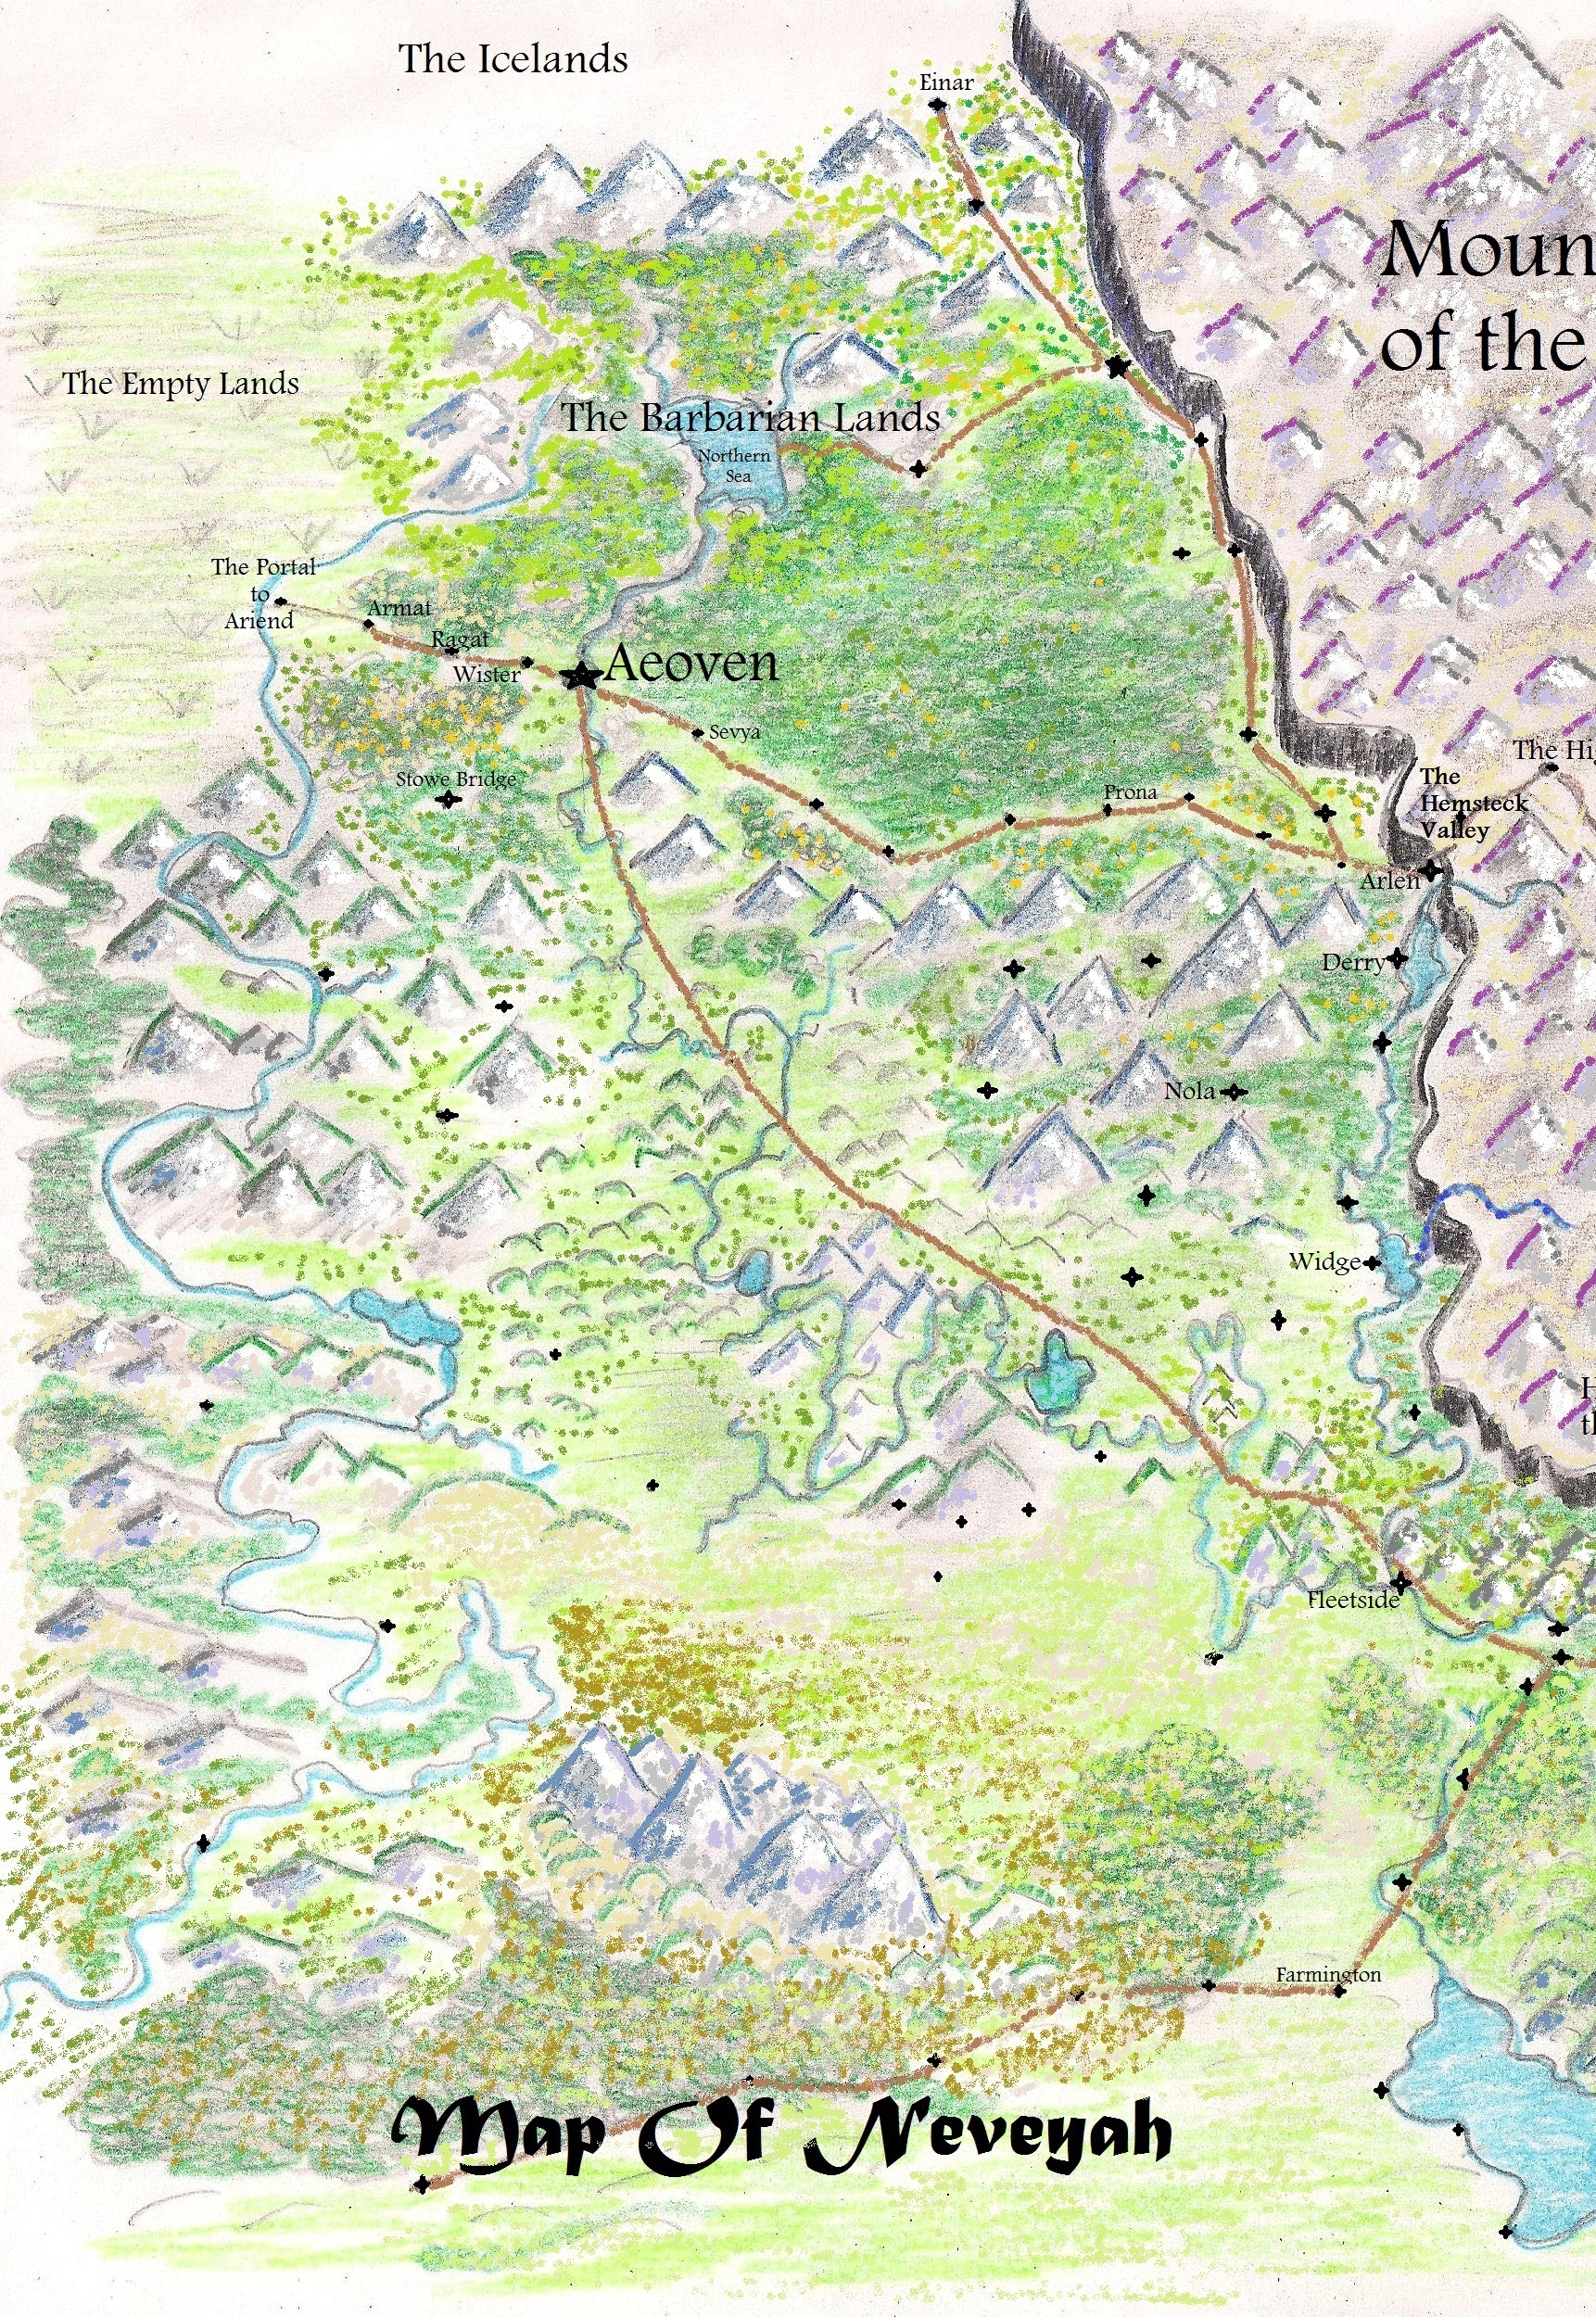 Map making life in the realm of fantasy heart of neveyah relief 3 4 2013 001 gumiabroncs Image collections